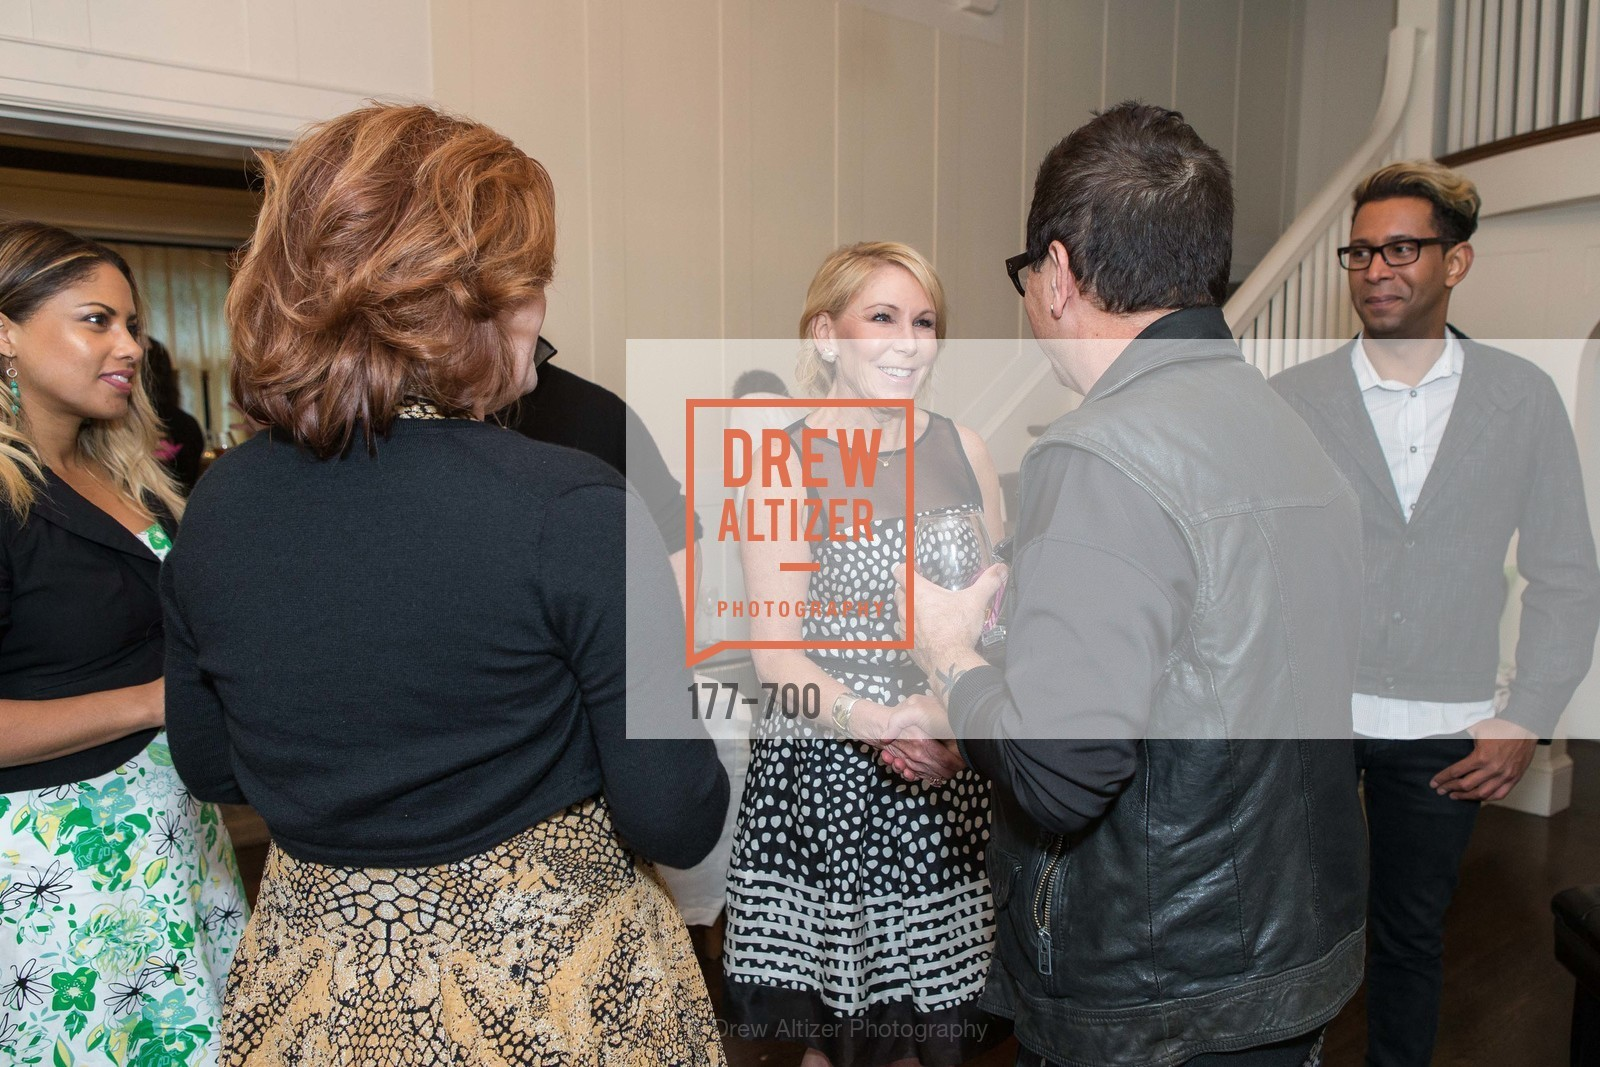 Extras, SUKEY FORBES' Book Signing, May 6th, 2015, Photo,Drew Altizer, Drew Altizer Photography, full-service agency, private events, San Francisco photographer, photographer california